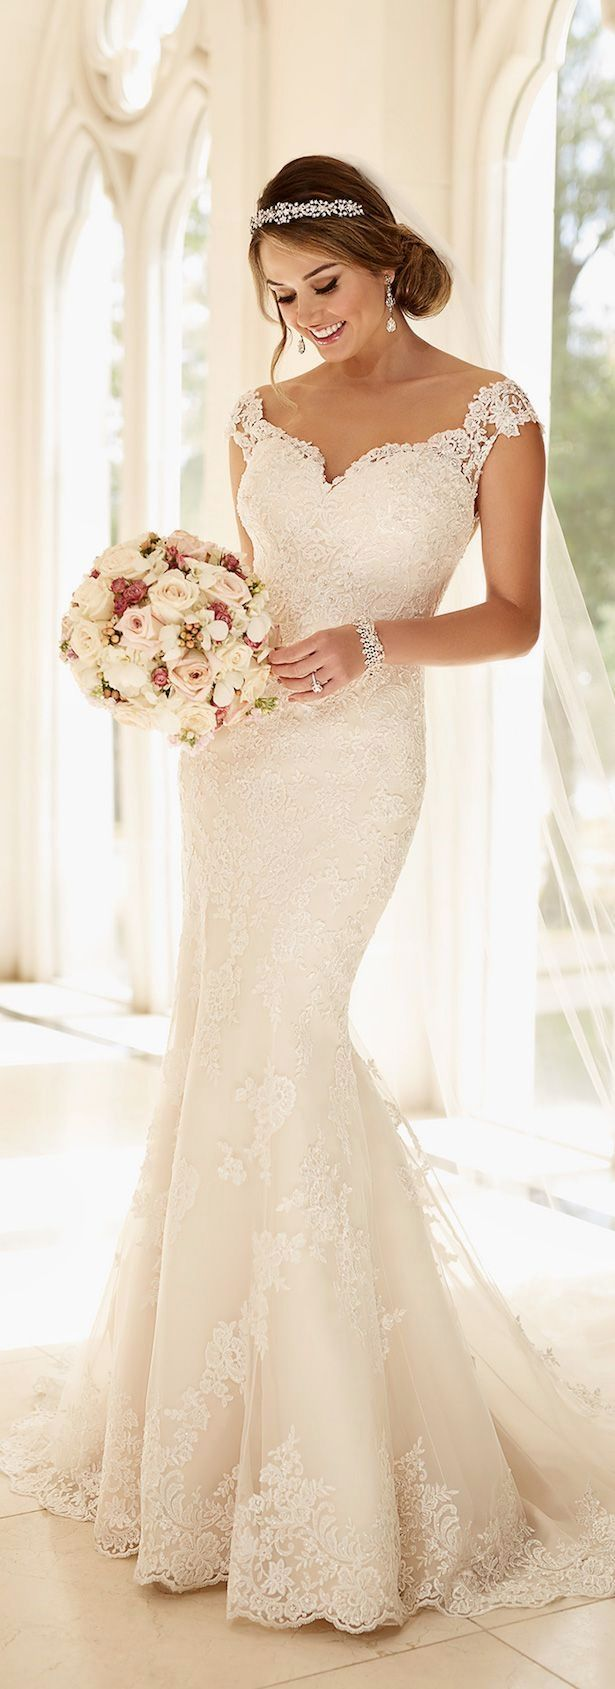 best wedding dress project images on pinterest groom attire